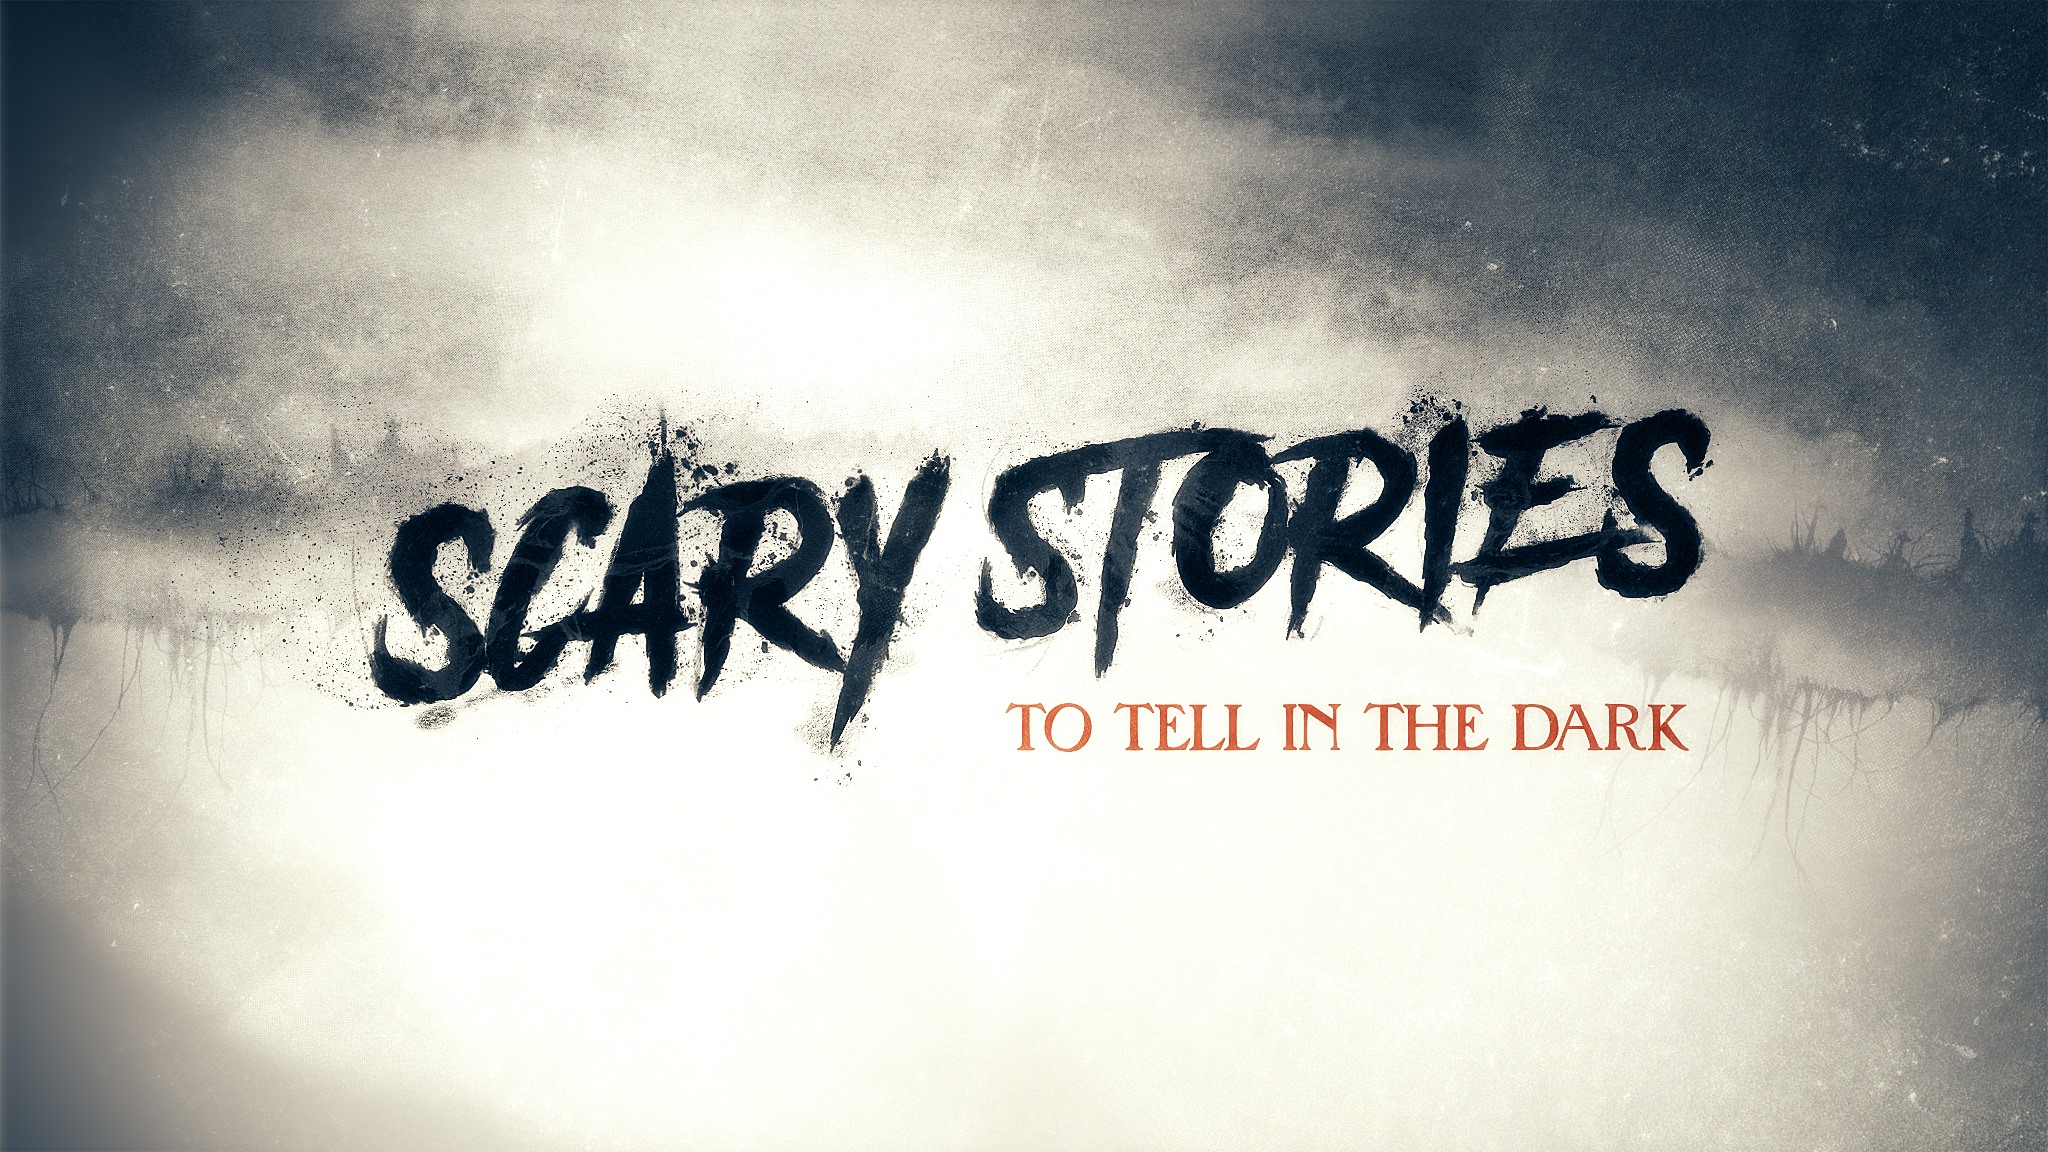 Review Scary Stories To Develop Younger Horror Fans With We